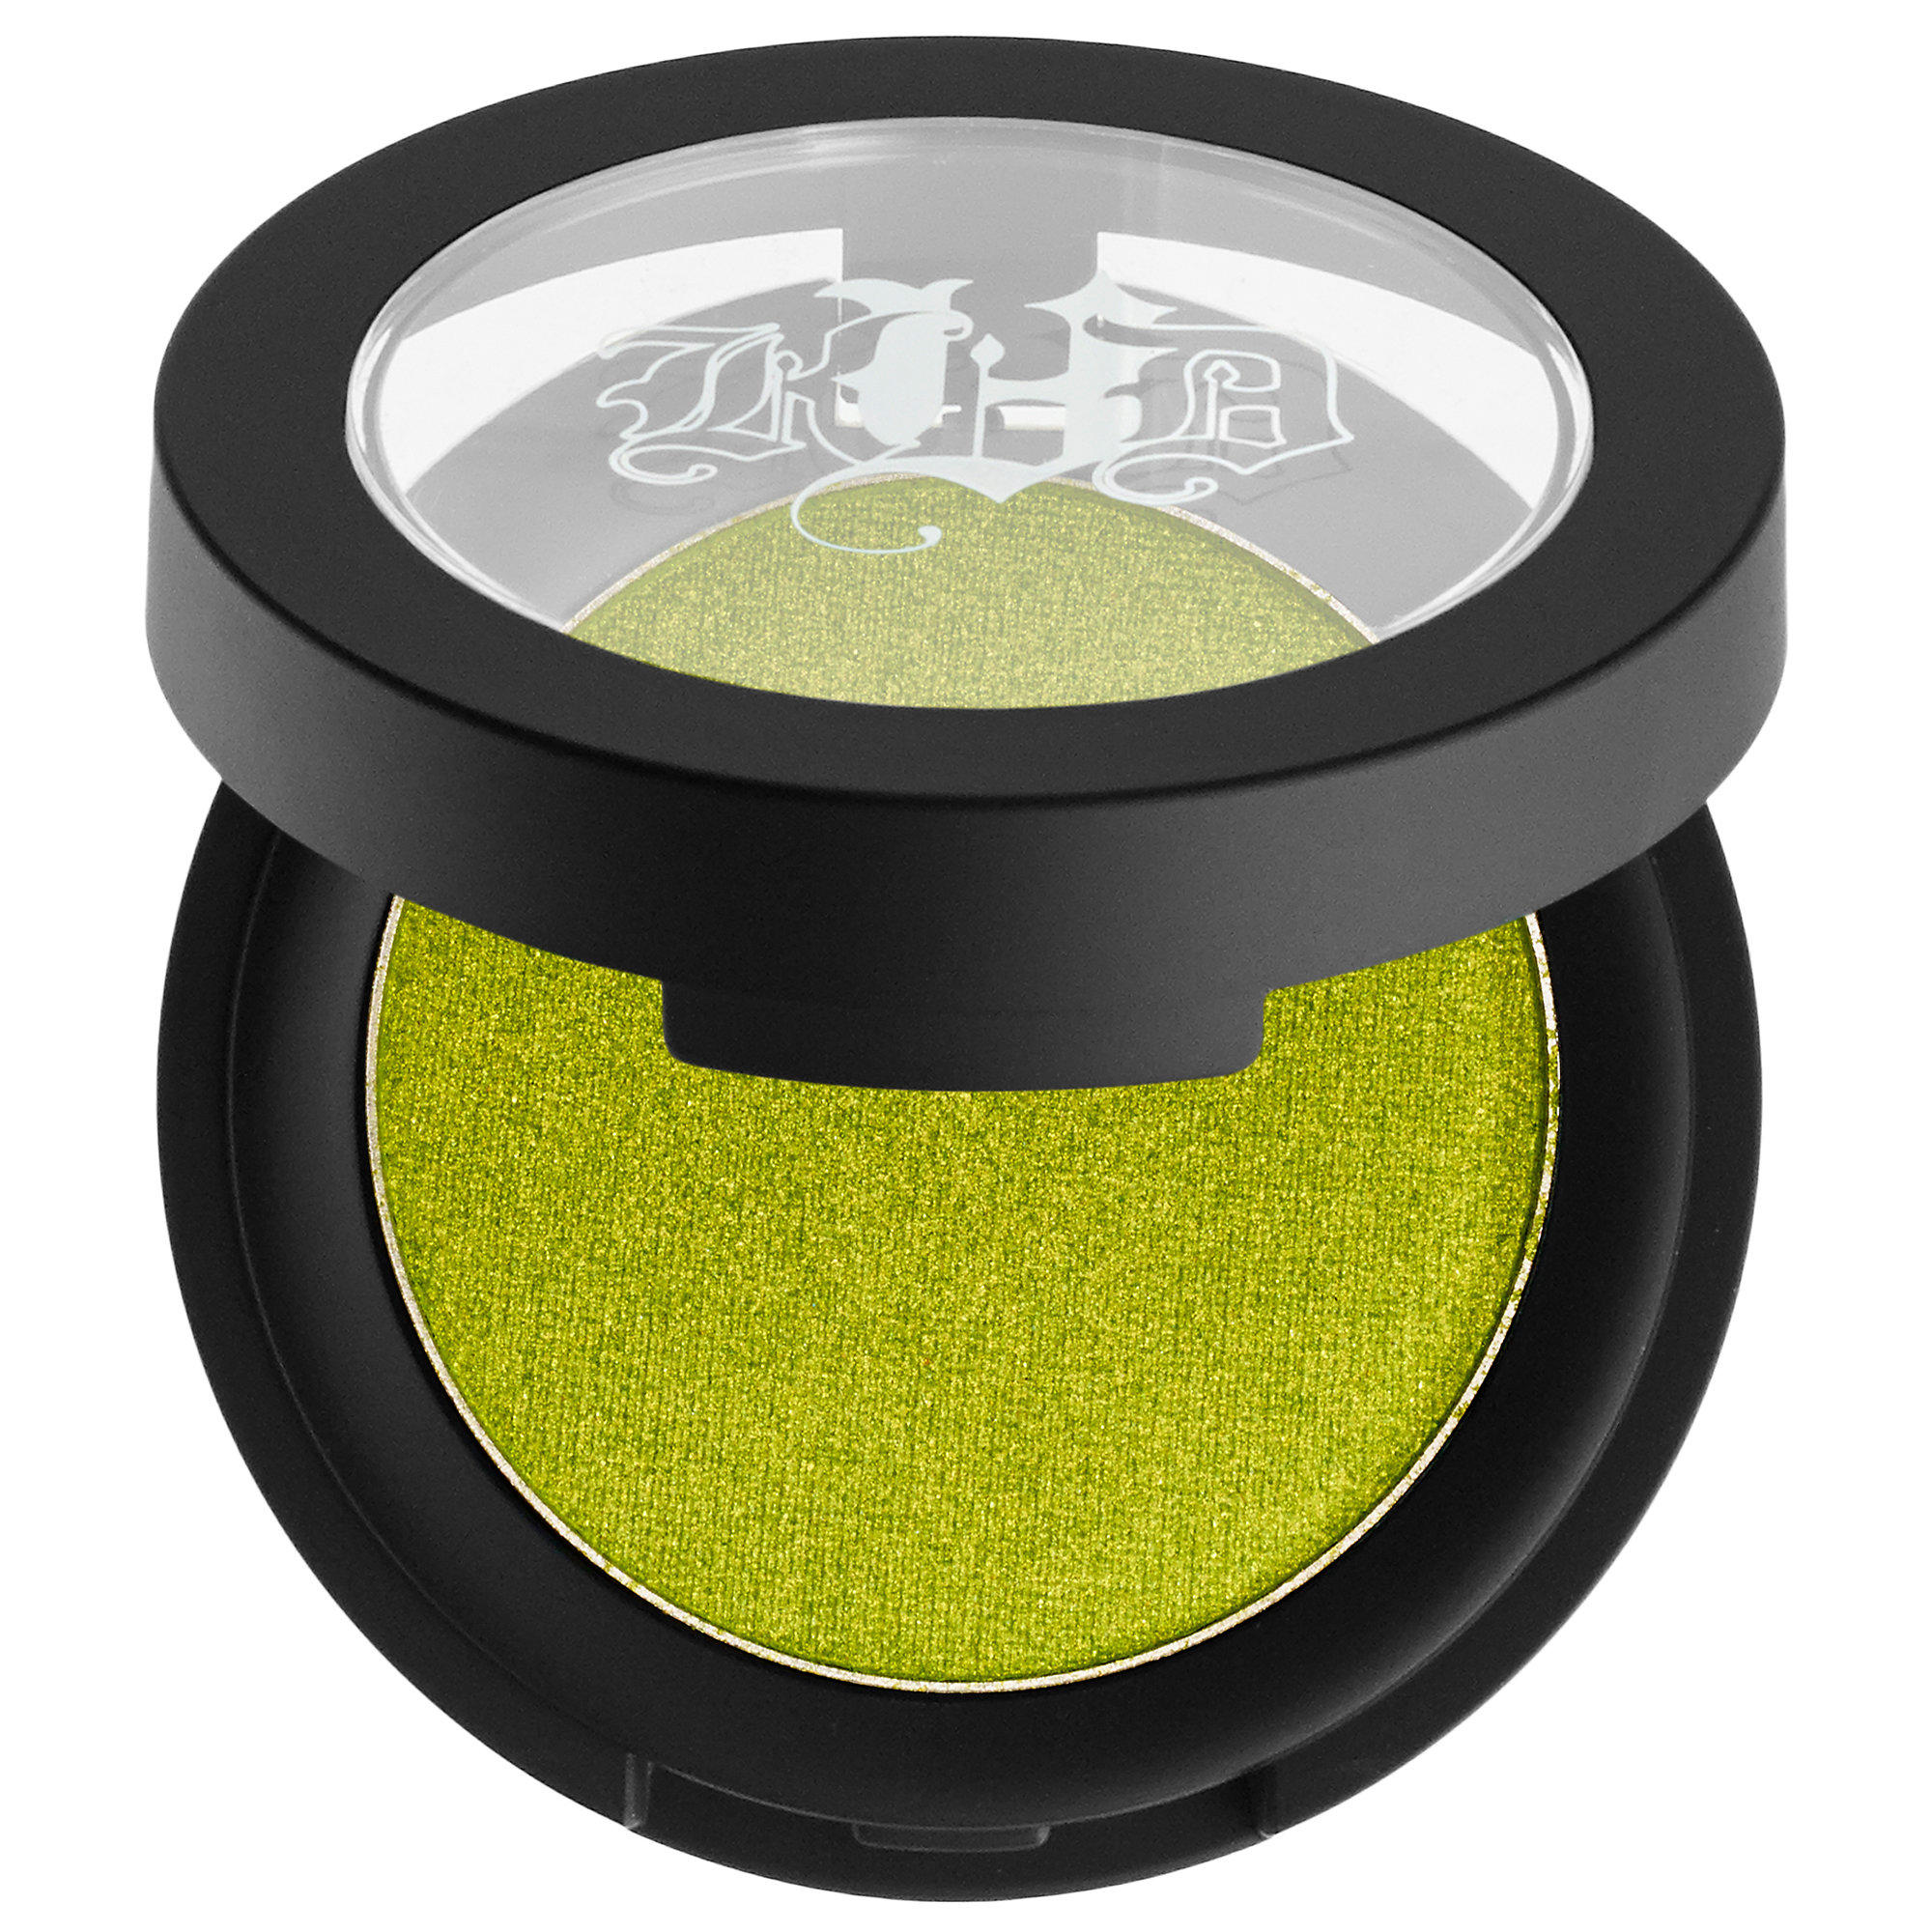 Kat Von D Metal Crush Eyeshadow Electric Warrior